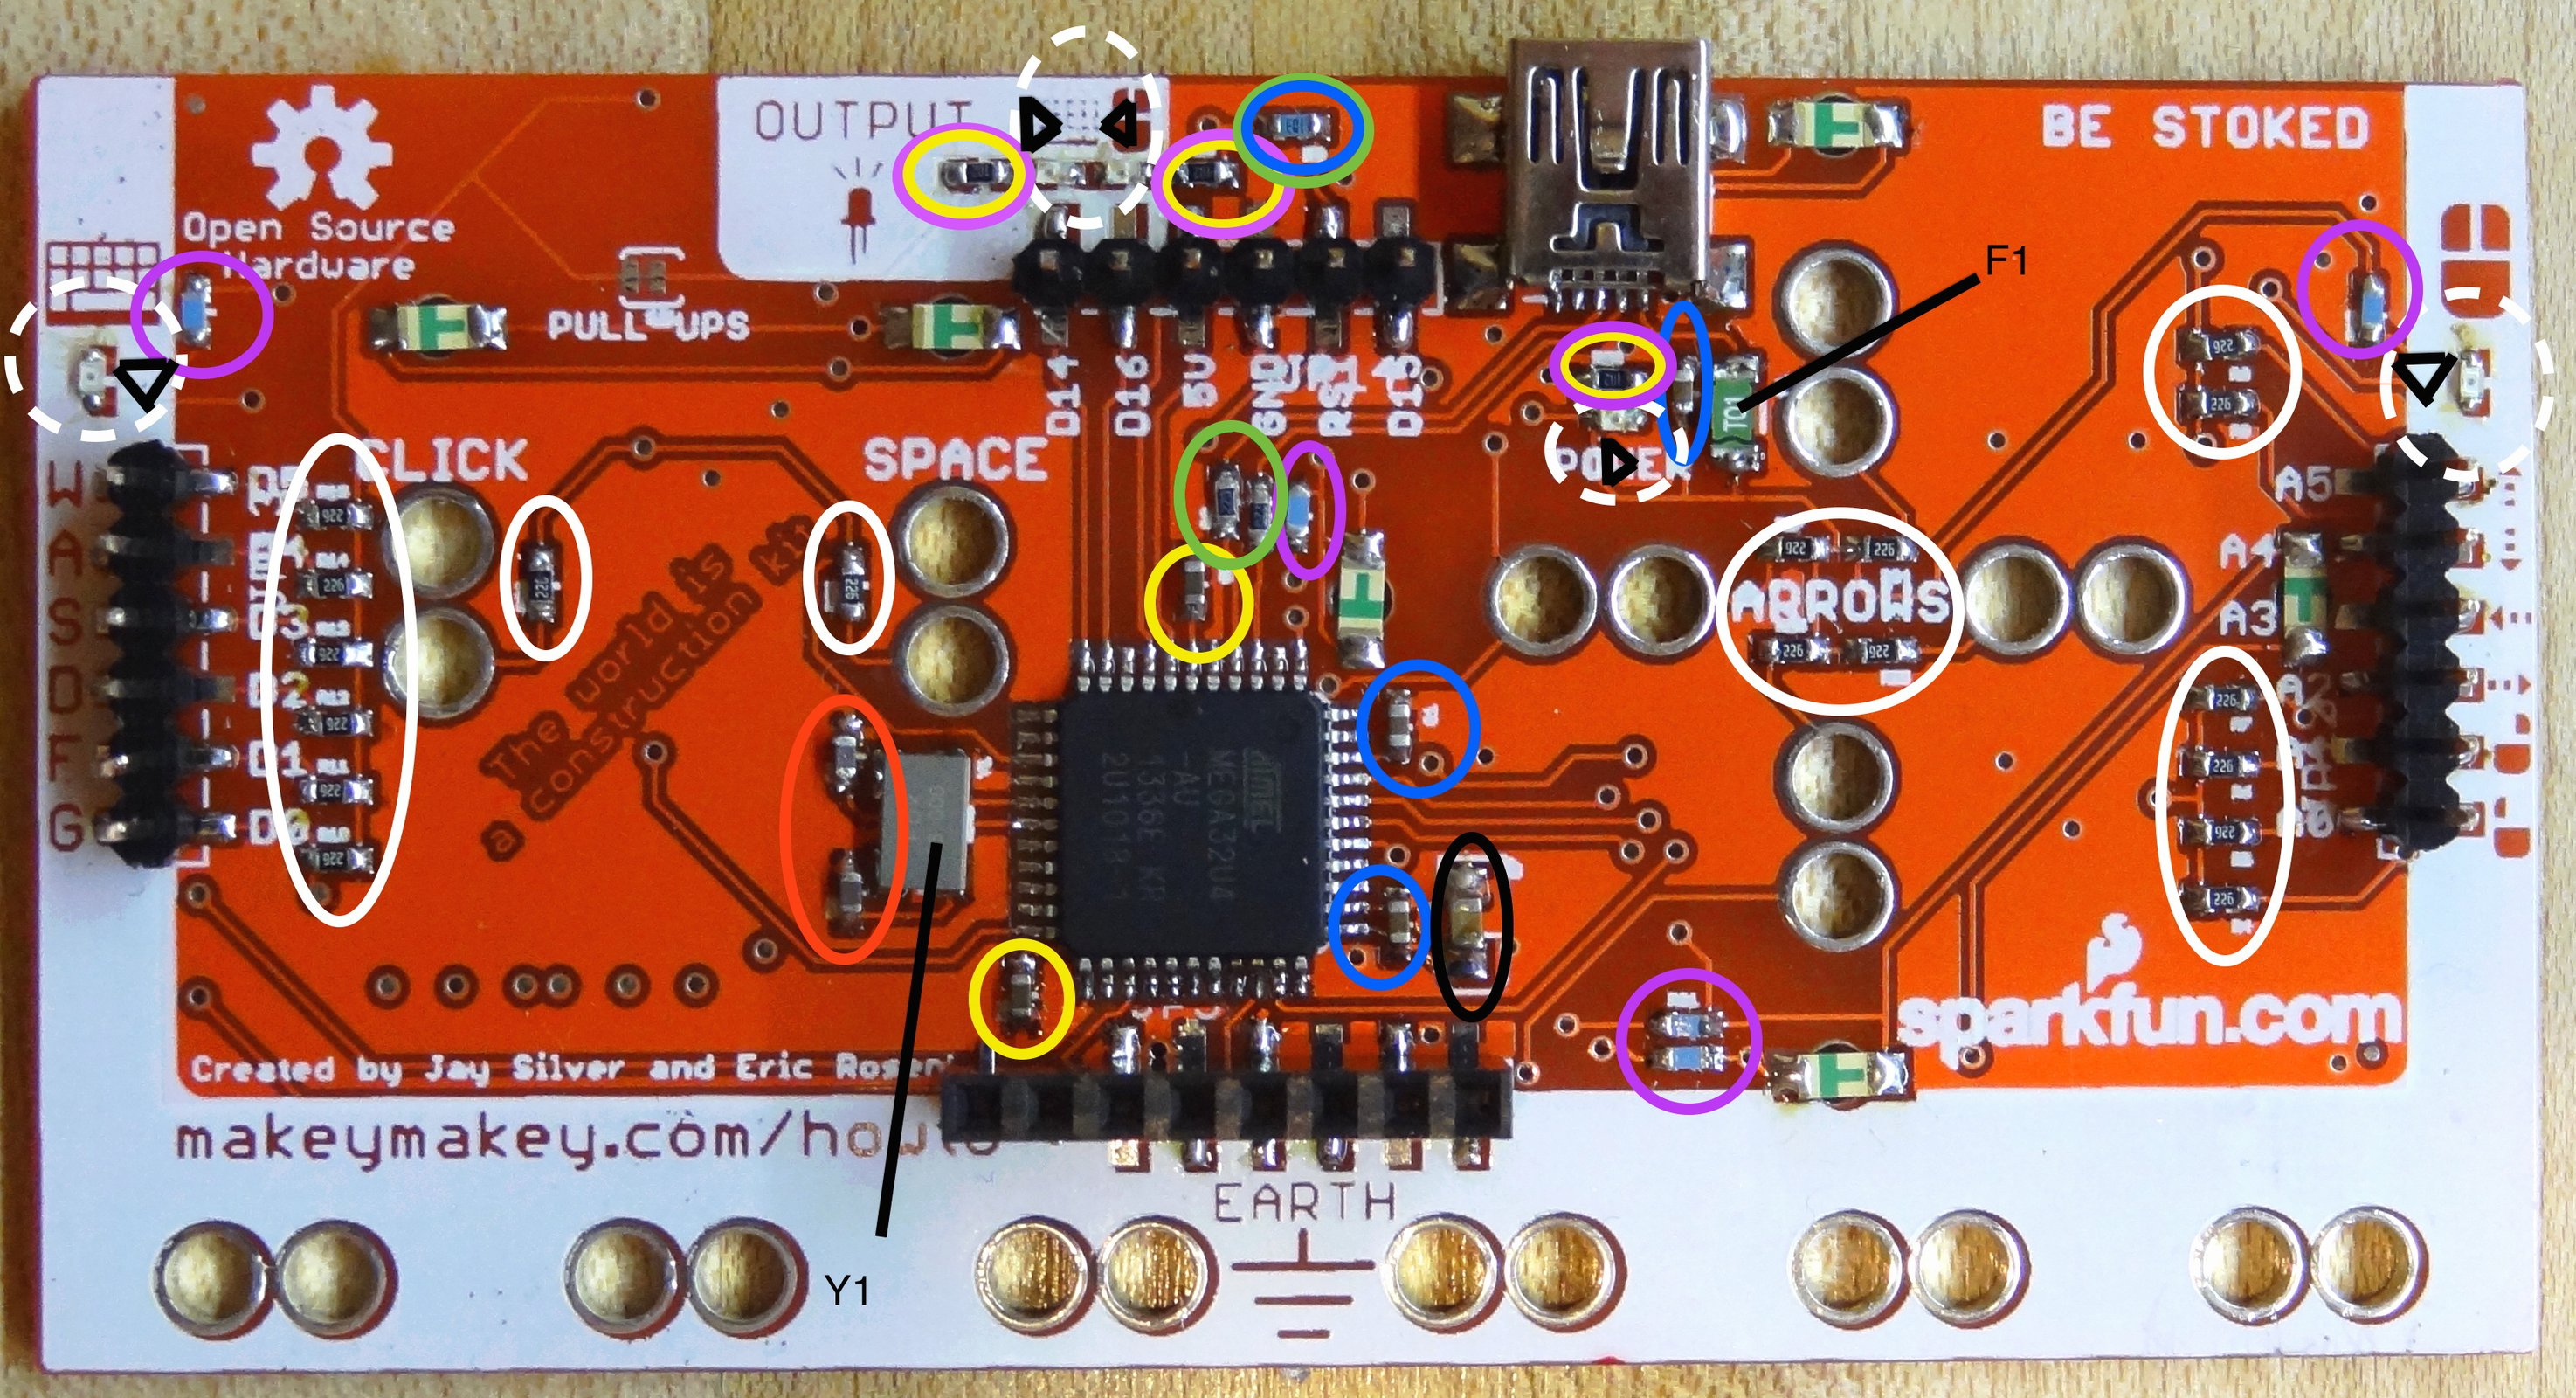 Makeymakey Pcb Only From Tomkeddie On Tindie Circuit Board Maker Buy Printed Makerpcb 2